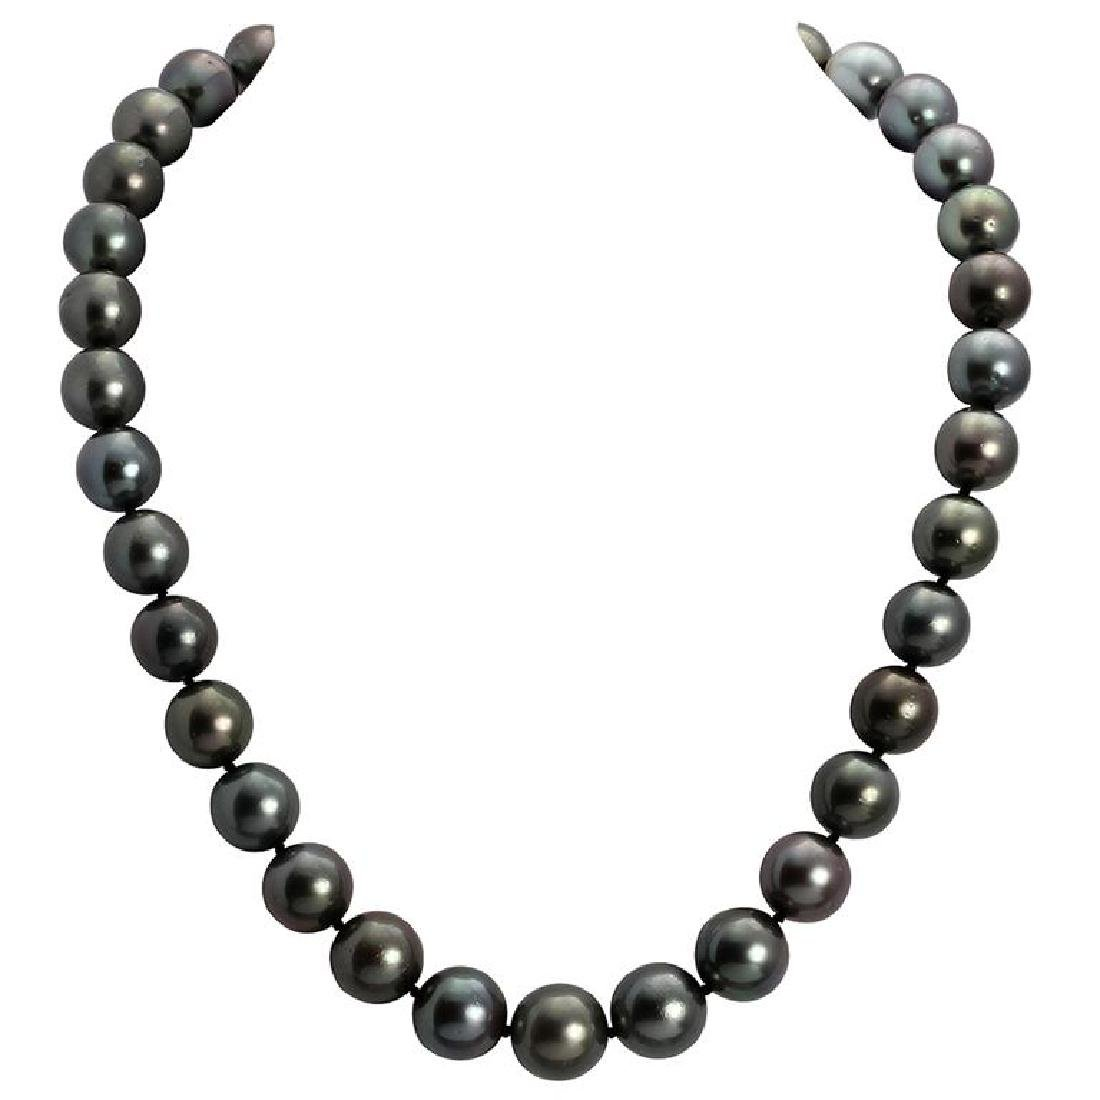 11-13mm Natural South Sea Pearl Necklace